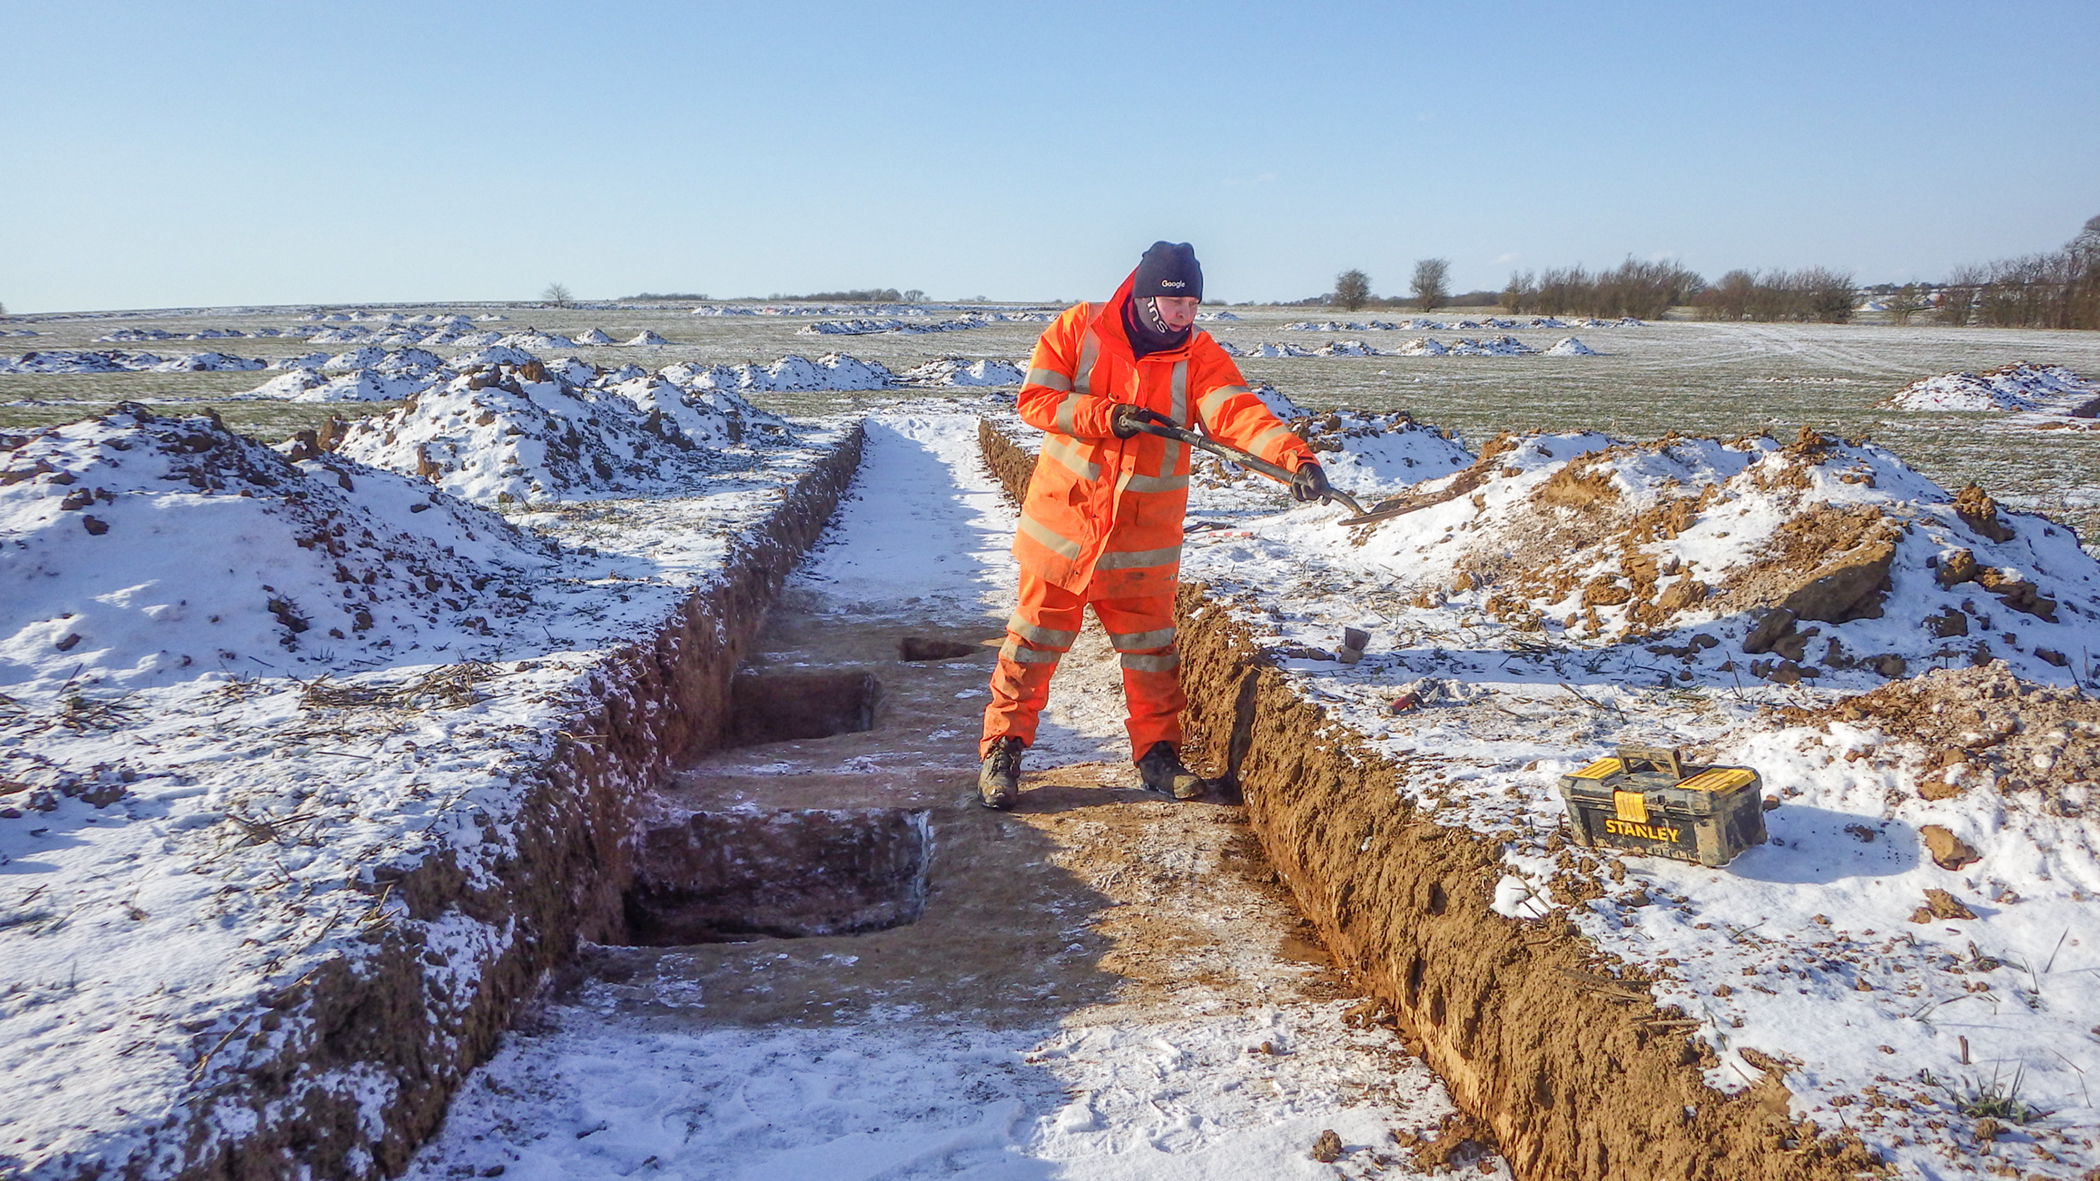 Excavation in the snow